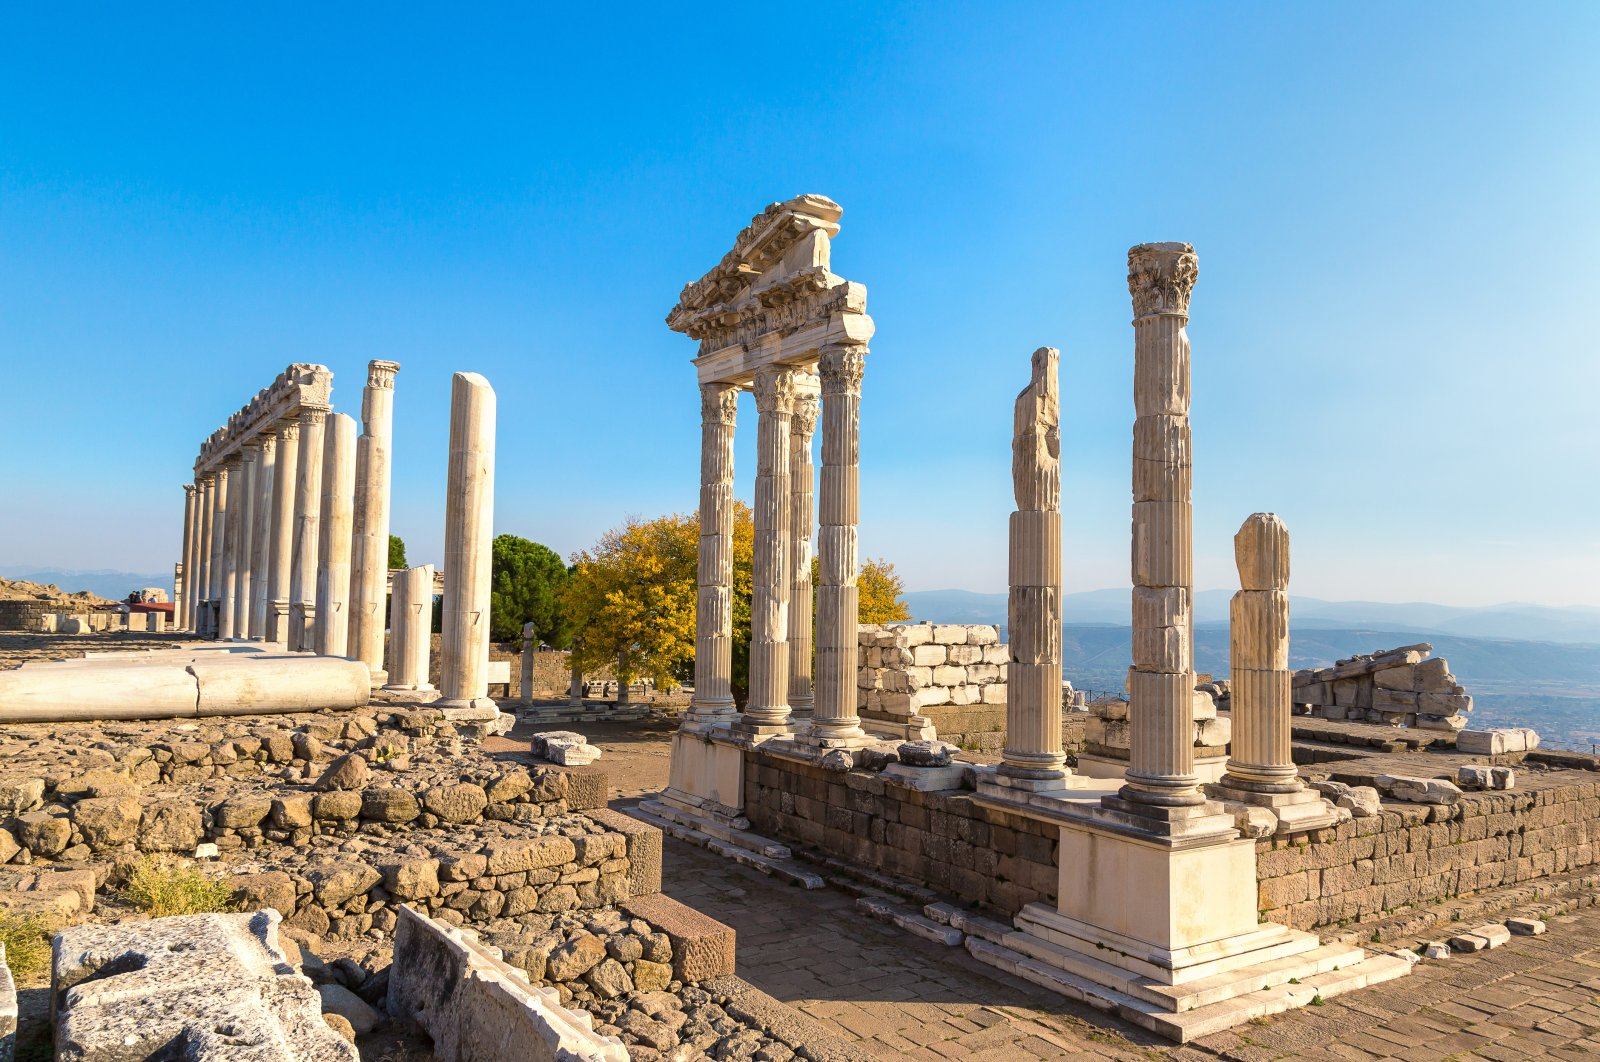 Temple of Trajan in the acropolis of the ancient city Pergamon, Izmir, western Turkey. (Shutterstock Photo)